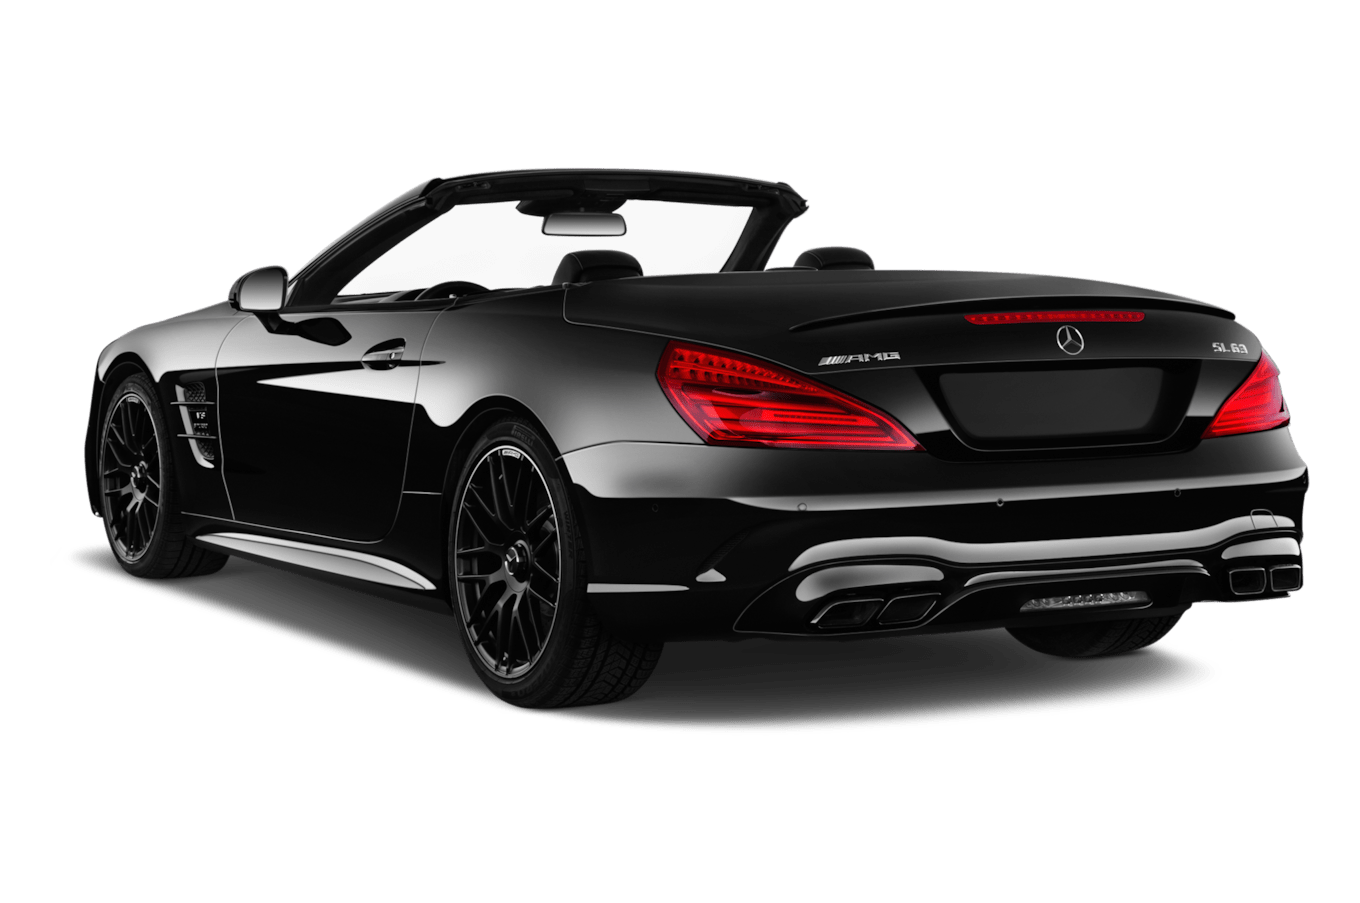 2017 Mercedesbenz Slclass Reviews And Rating  Motor Trend